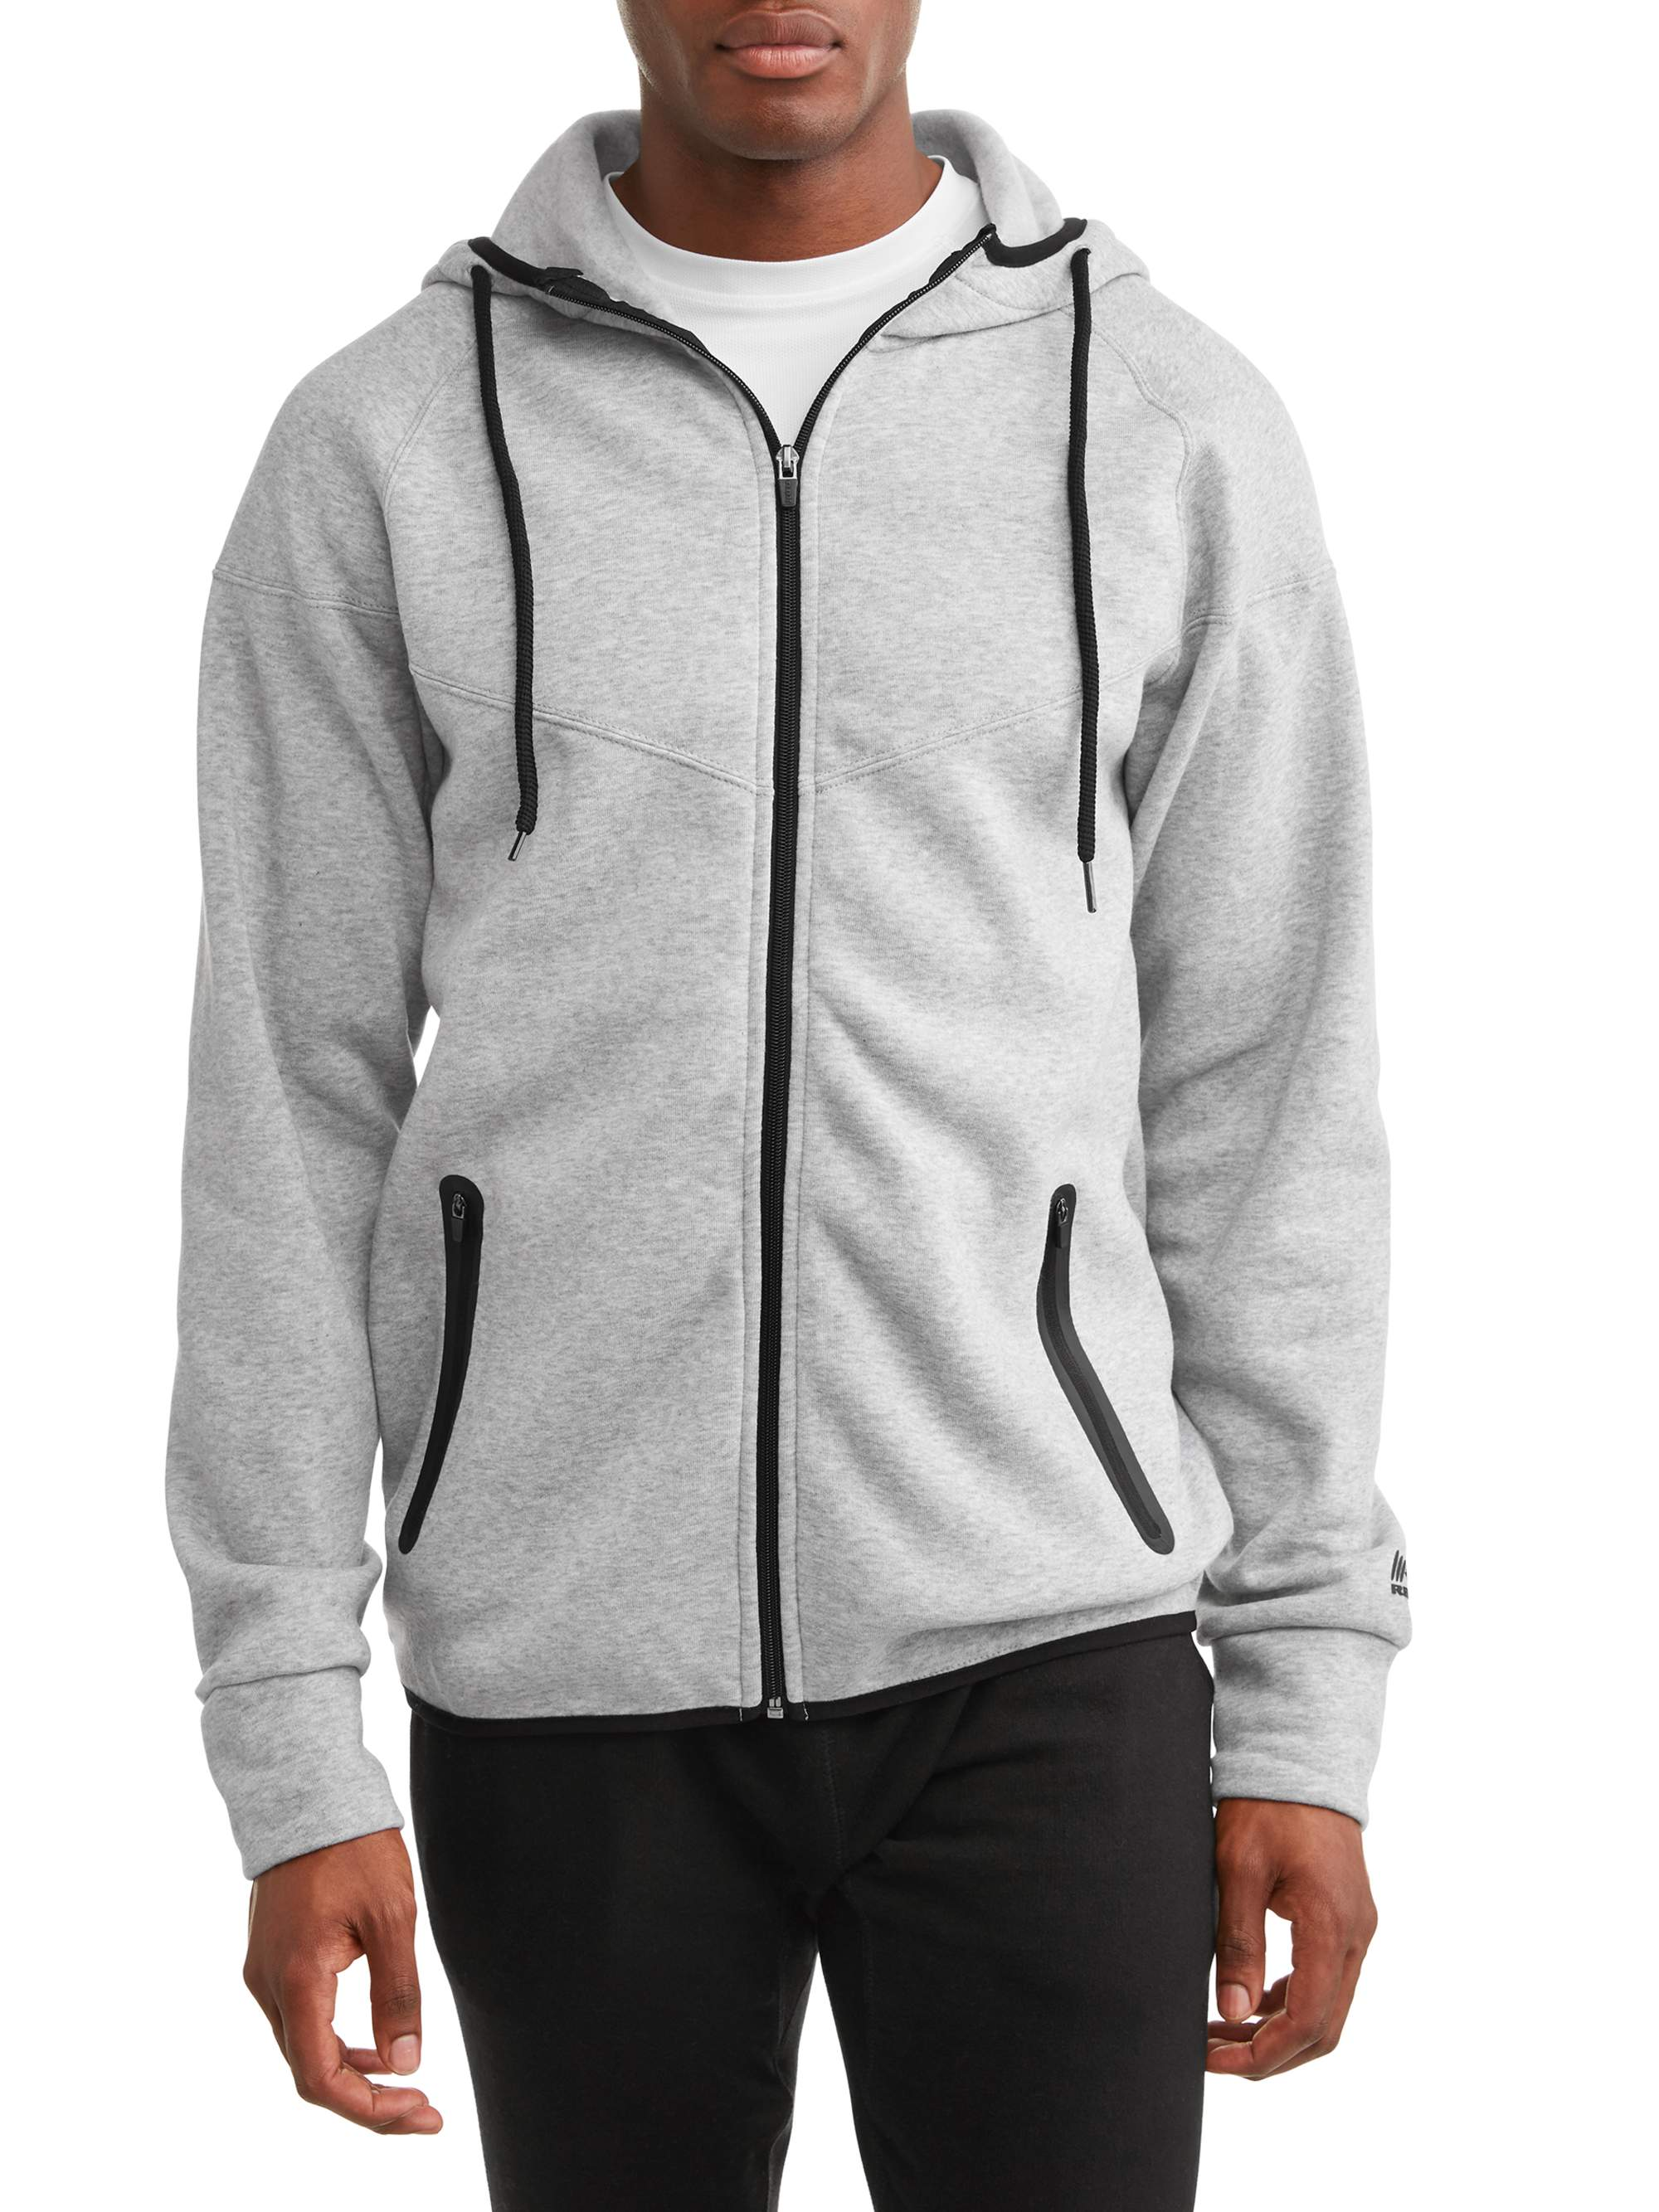 RBX Men's Fleece Hooded Full Zip Jacket